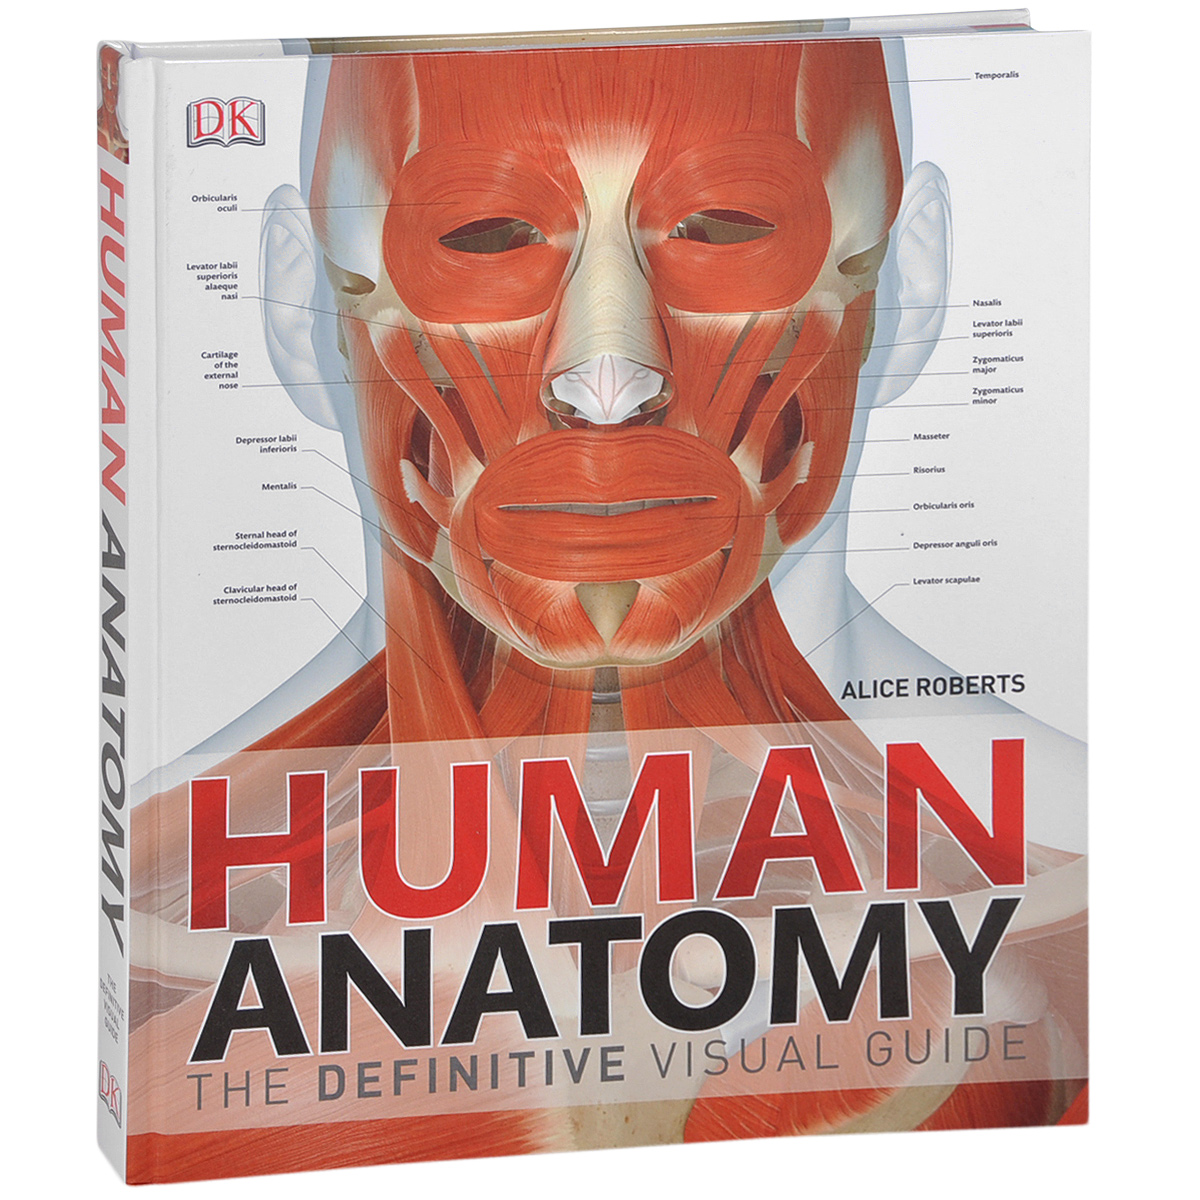 Human Anatomy: The Definitive Visual Guide cmam viscera01 human anatomy stomach associated of the upper abdomen model in 6 parts